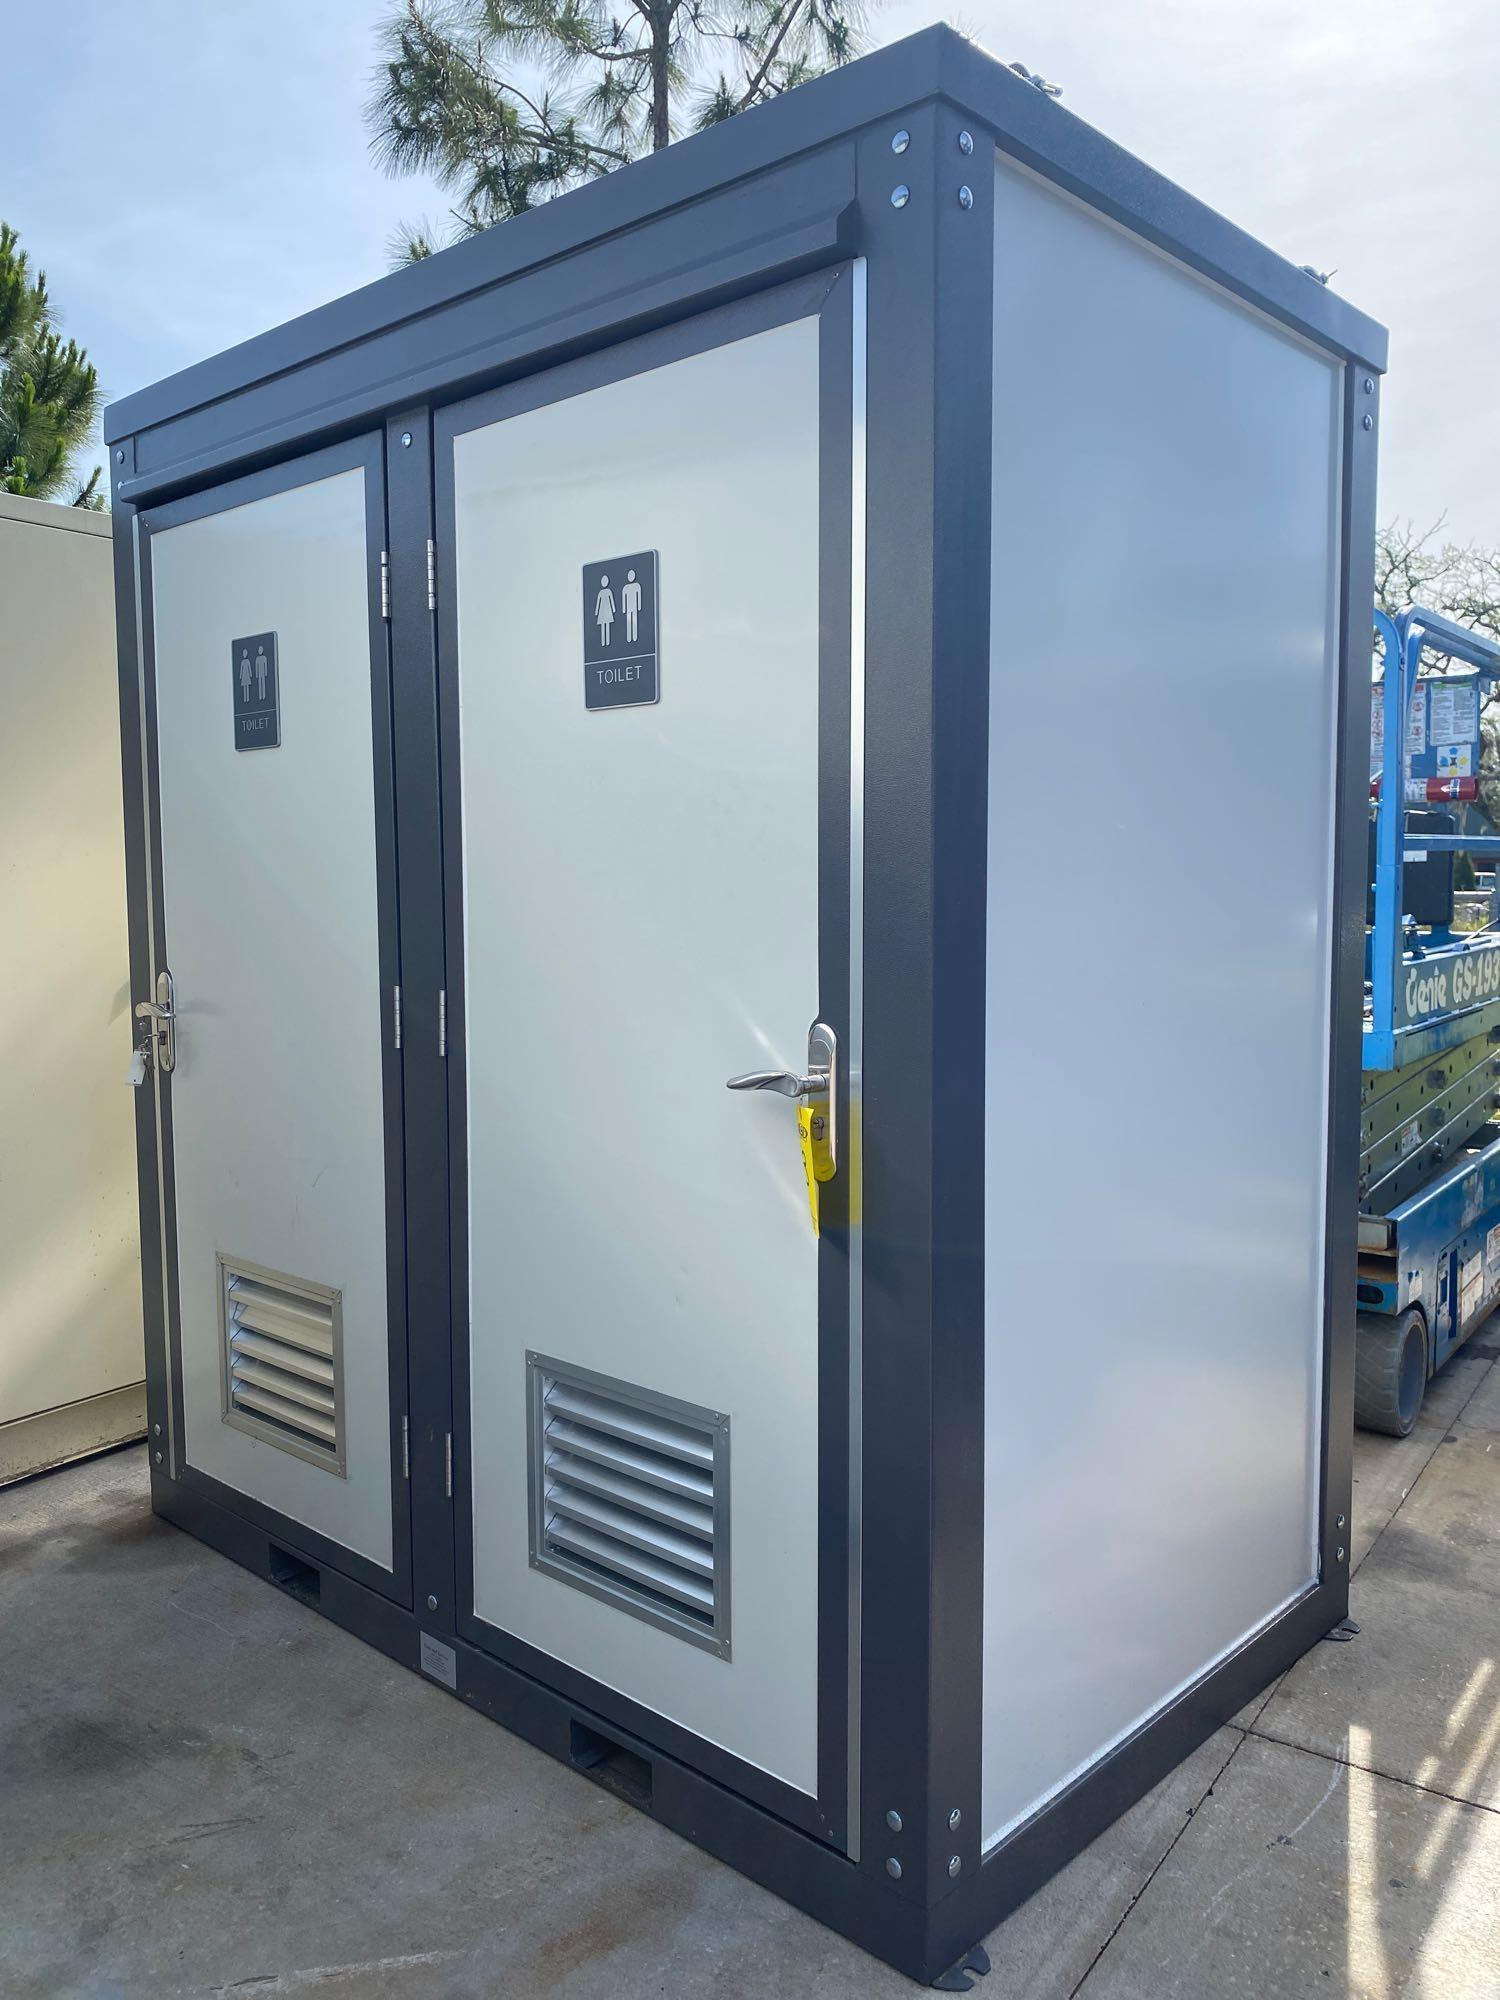 """NEW/UNUSED PORTABLE BATHROOM UNIT, TWO STALLS, PLUMBING AND ELECTRIC HOOKUP, 81"""" WIDE 90"""" TALL 51"""" D"""